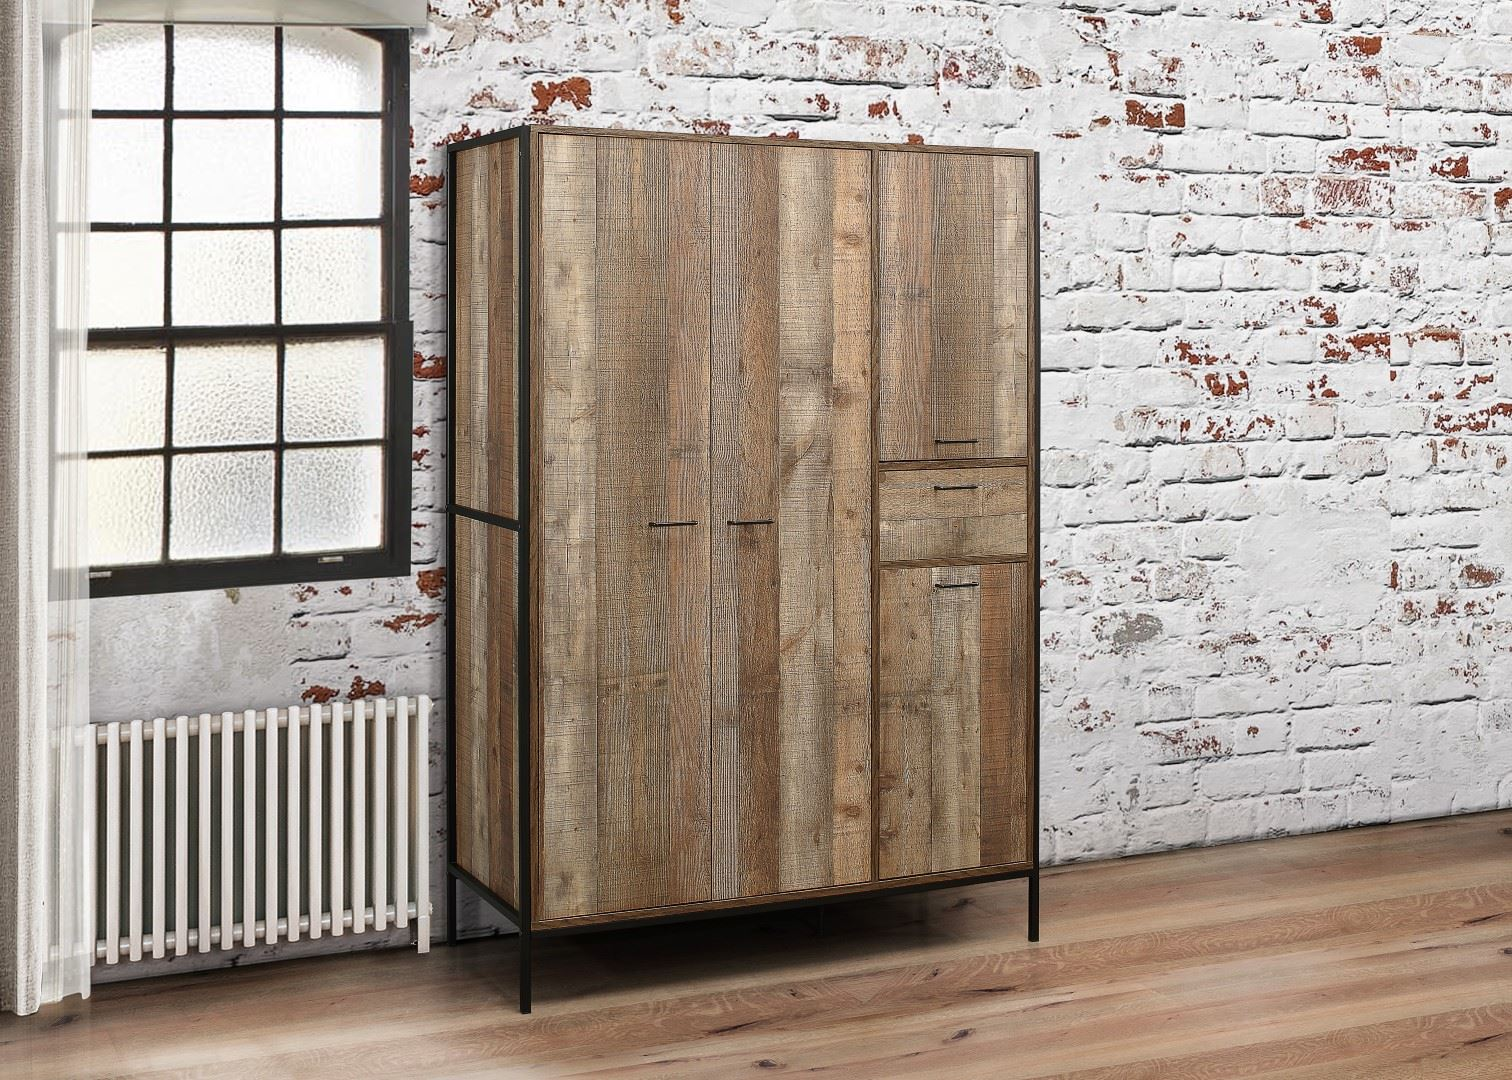 Birlea Urban Industrial Chic 4 Door Large Wardrobe with Drawer Wood Metal